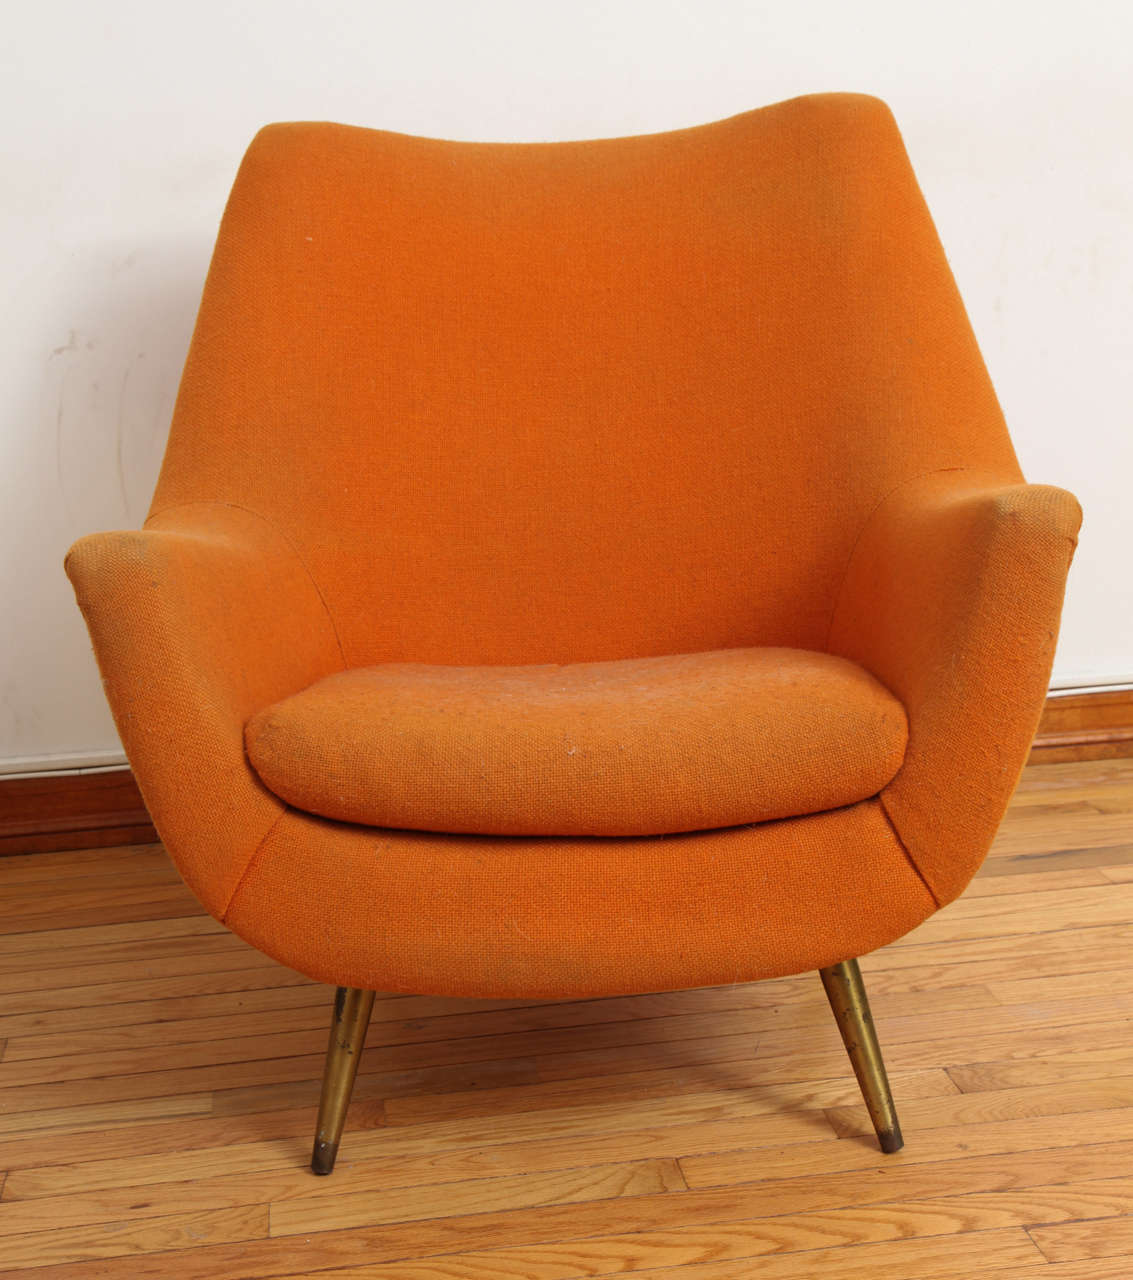 Sculptural Club Chair By Lawrence Peabody At 1stdibs # Muebles Lawrence